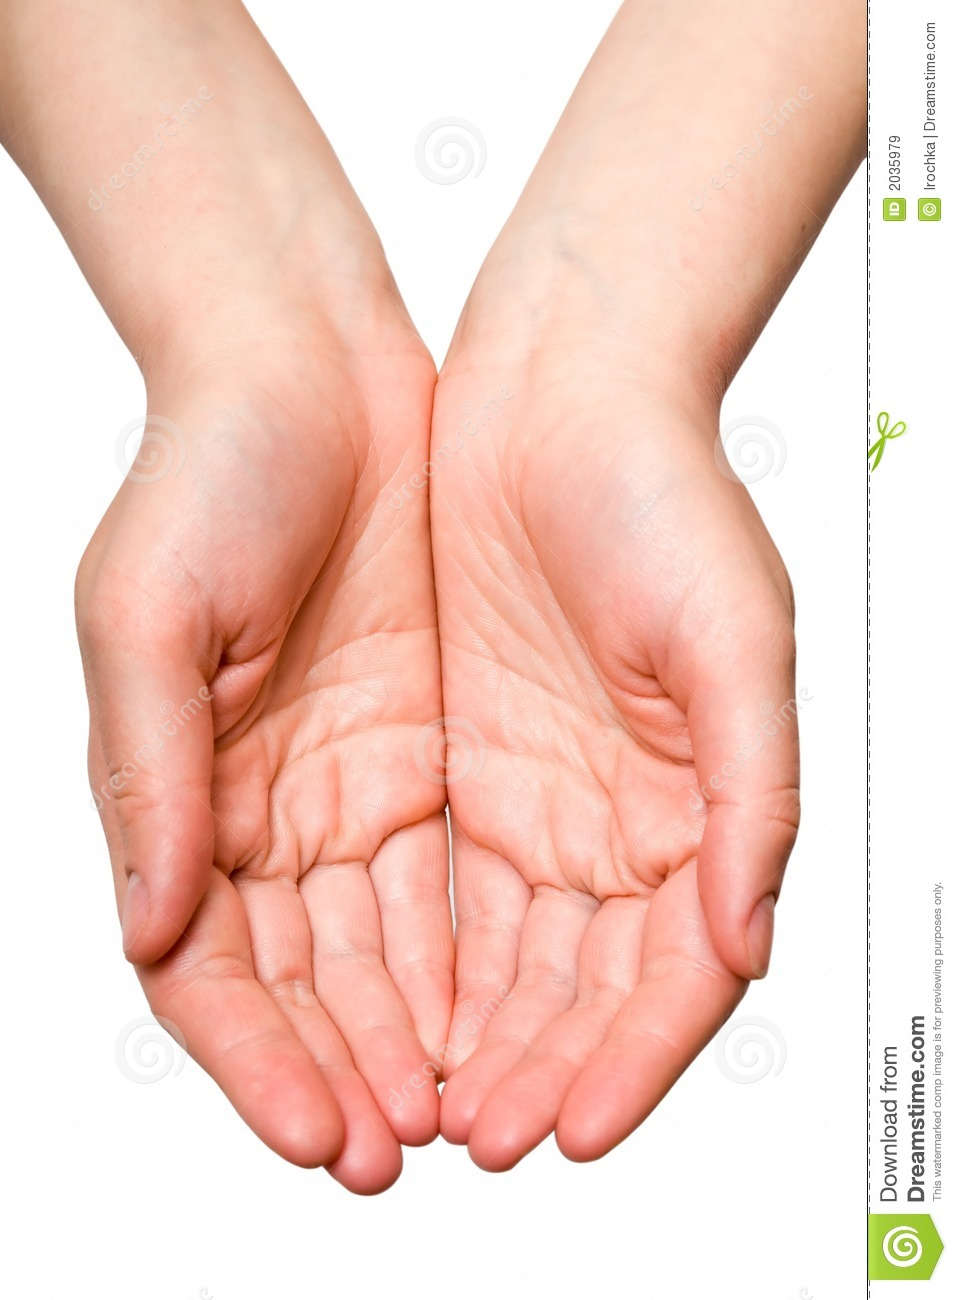 ... Free Stock Images - Image: 2035979 Open Hands Clipart Black And White